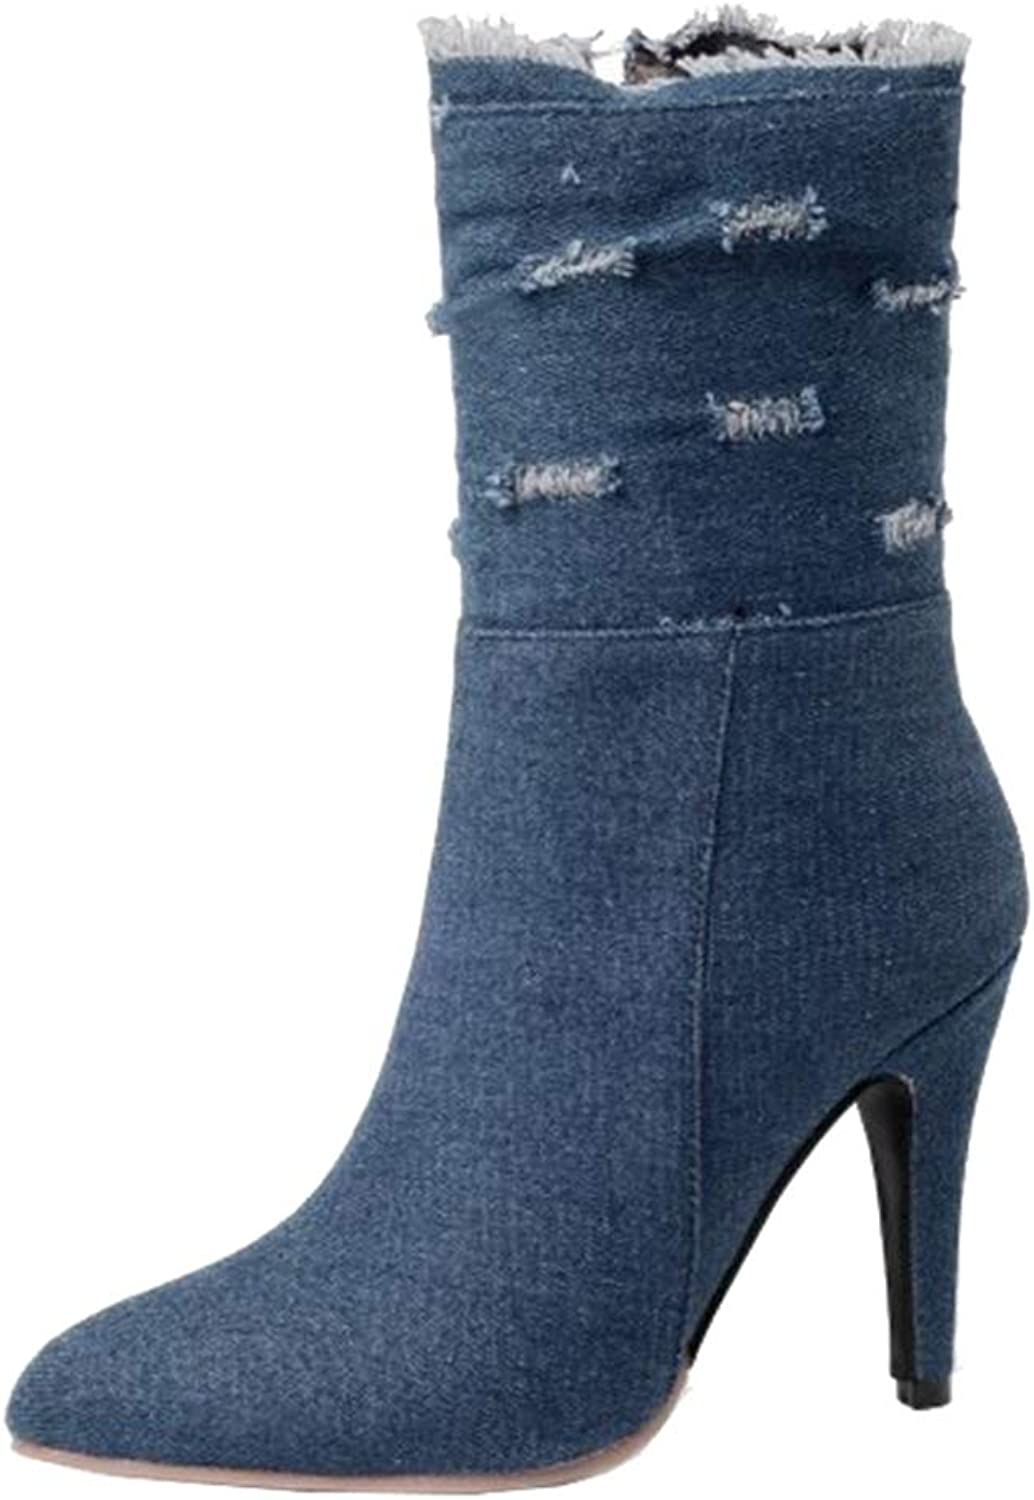 Onewus Women Mid-Calf Stiletto Jean Boots